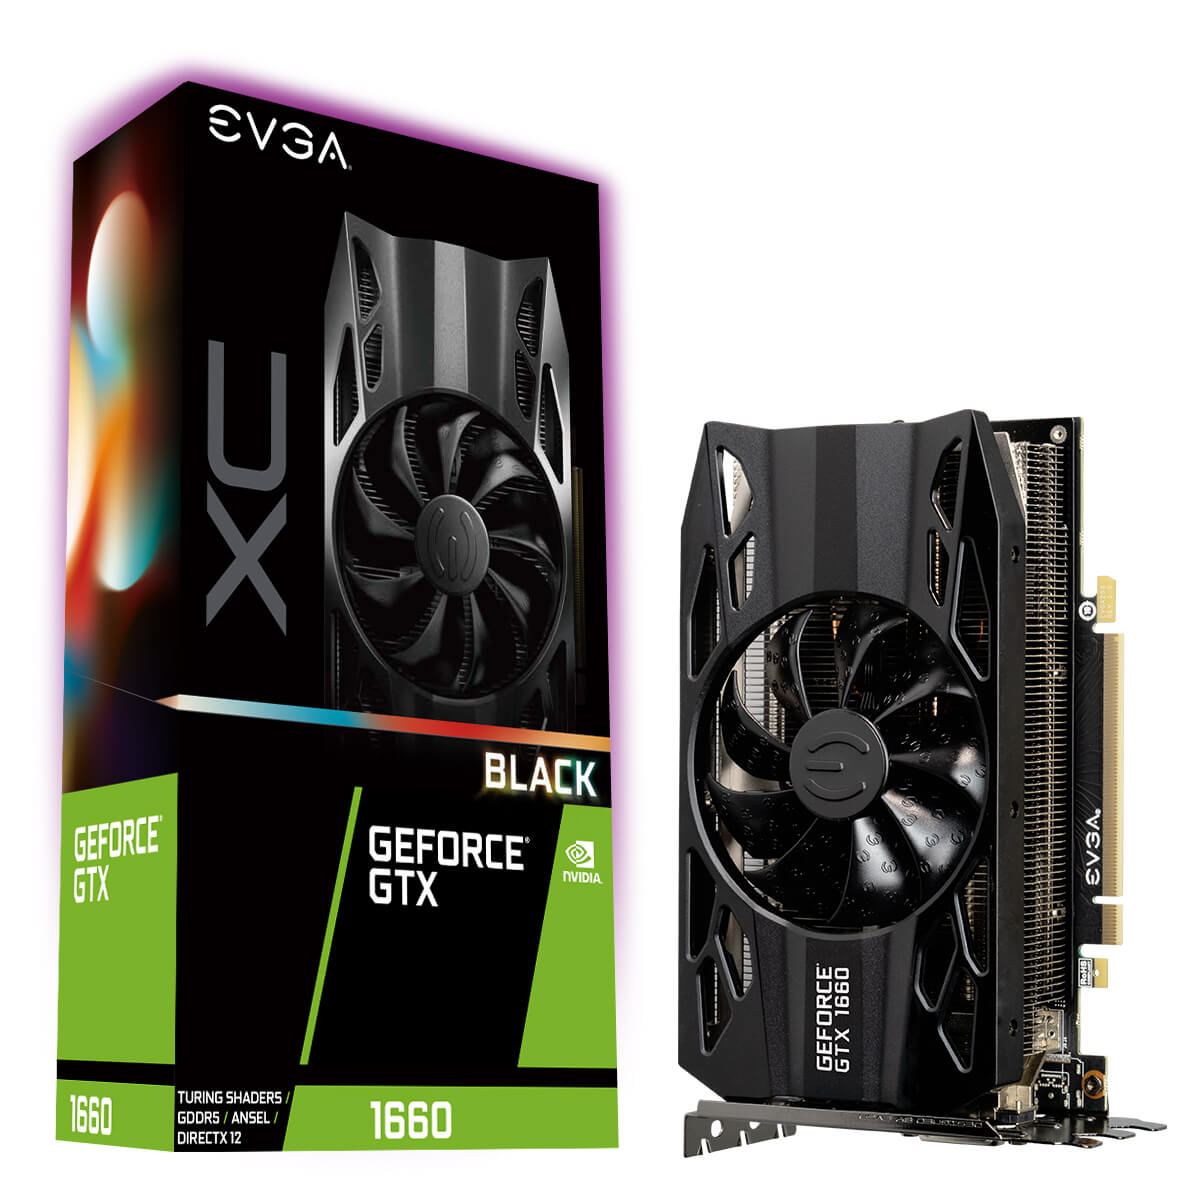 Introducing the EVGA GeForce GTX 1660